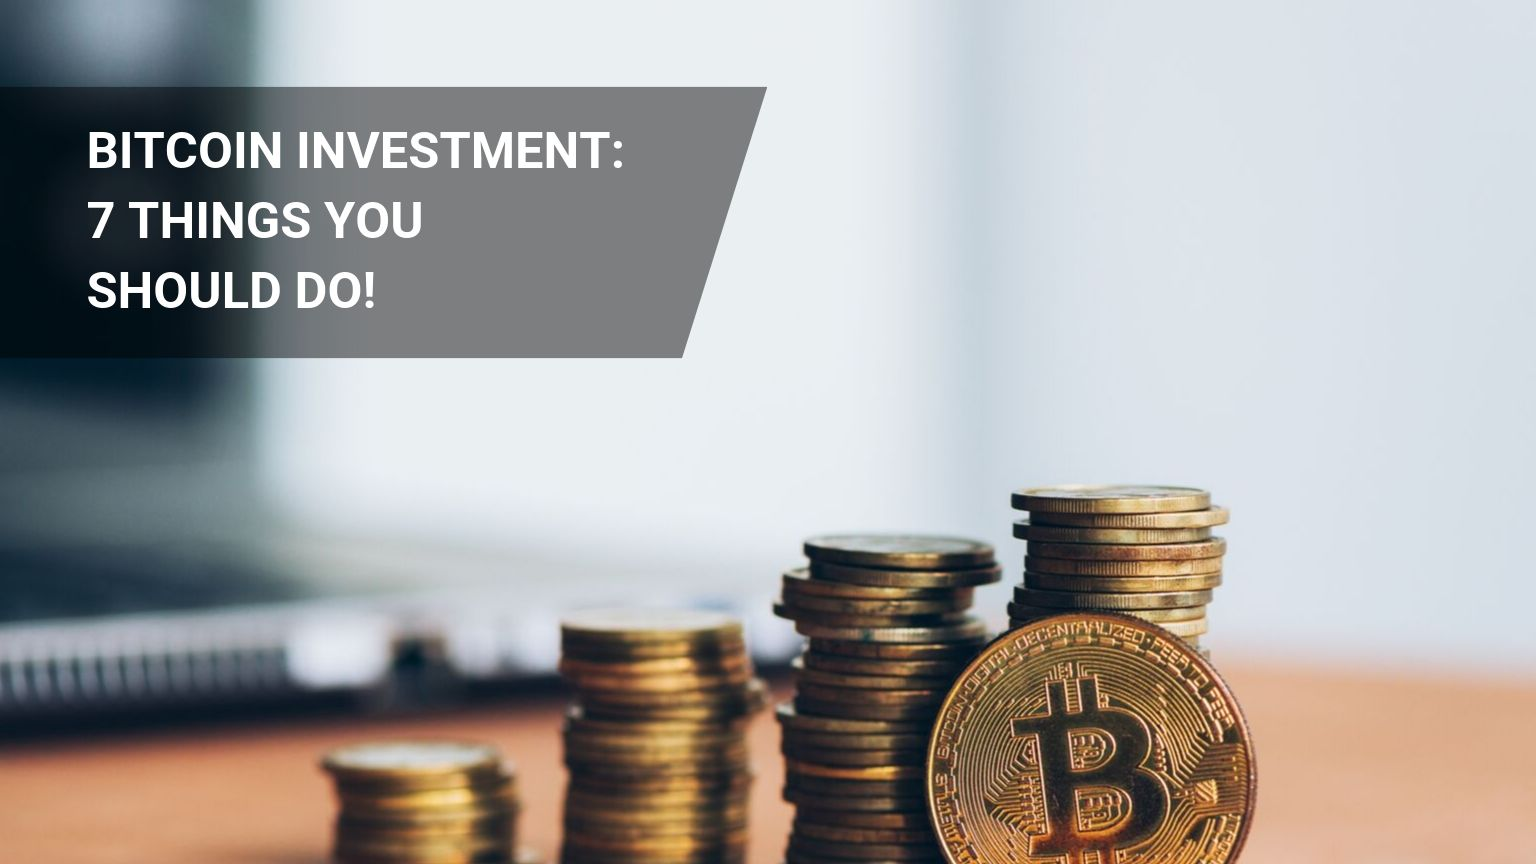 Bitcoin Investment Tips: 7 Things You Should Do!